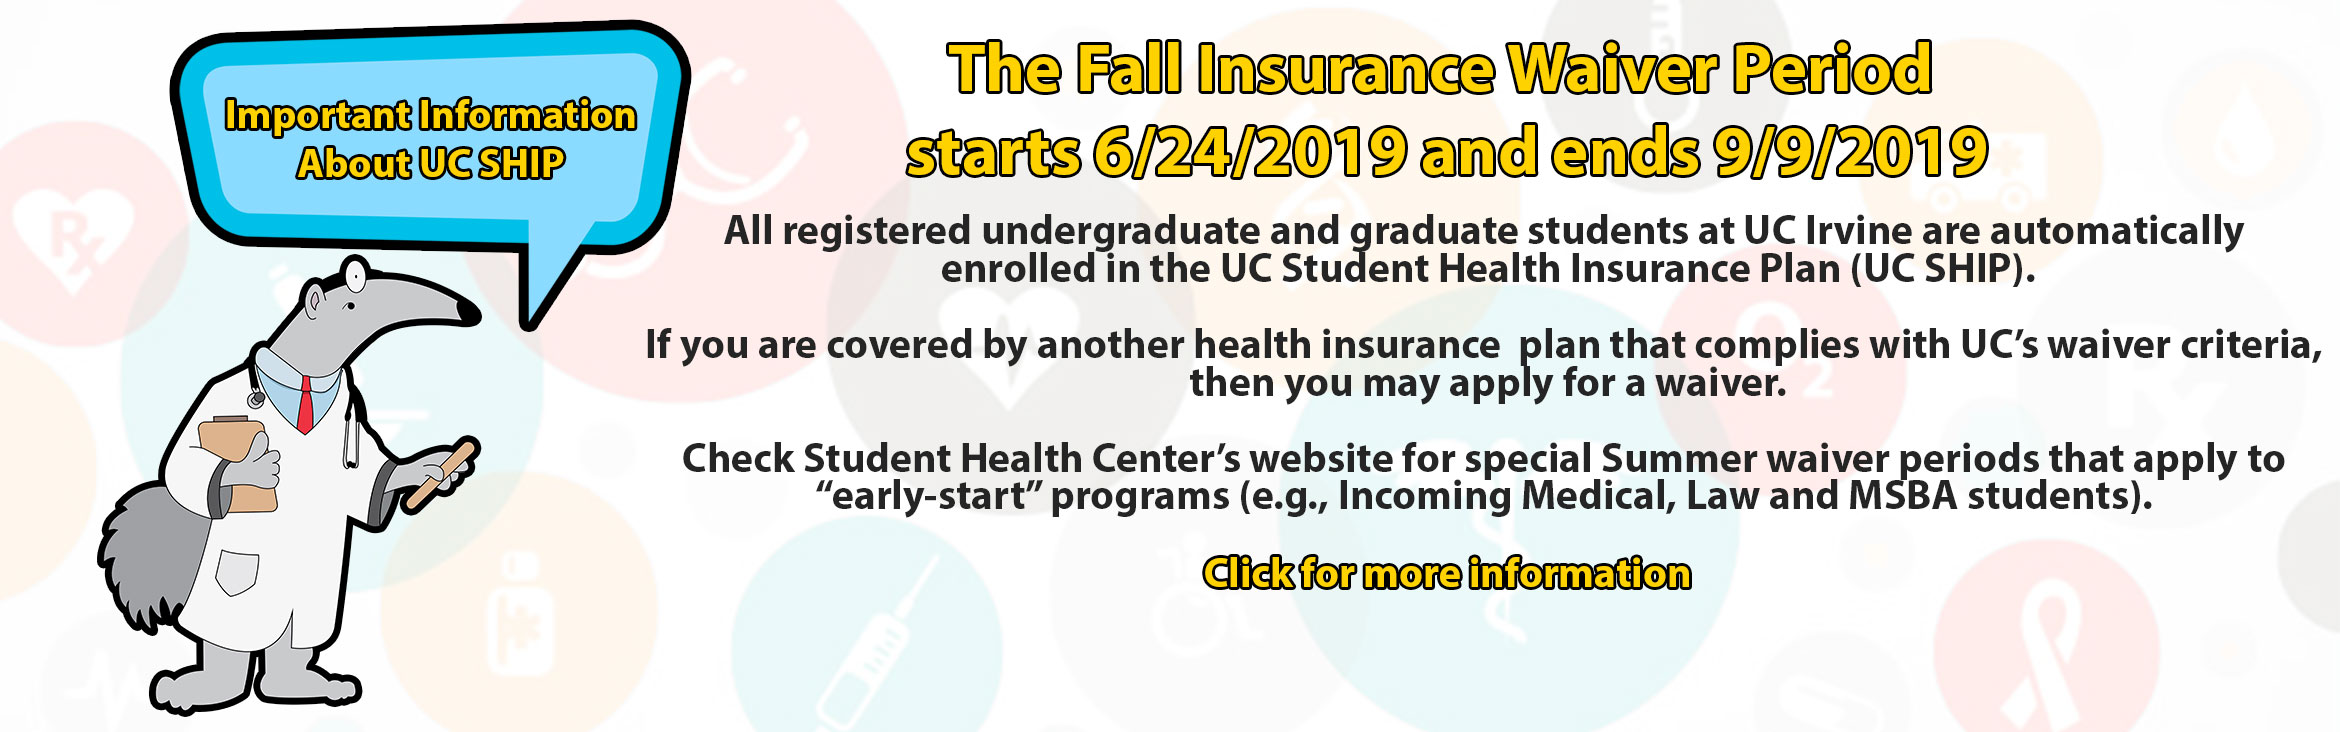 The Fall Insurance Waiver Period  starts 6/24/2019 and ends 9/9/2019, All registered undergraduate and graduate students at UC Irvine are automatically  enrolled in the UC Student Health Insurance Plan (UC SHIP).  If you are covered by another health